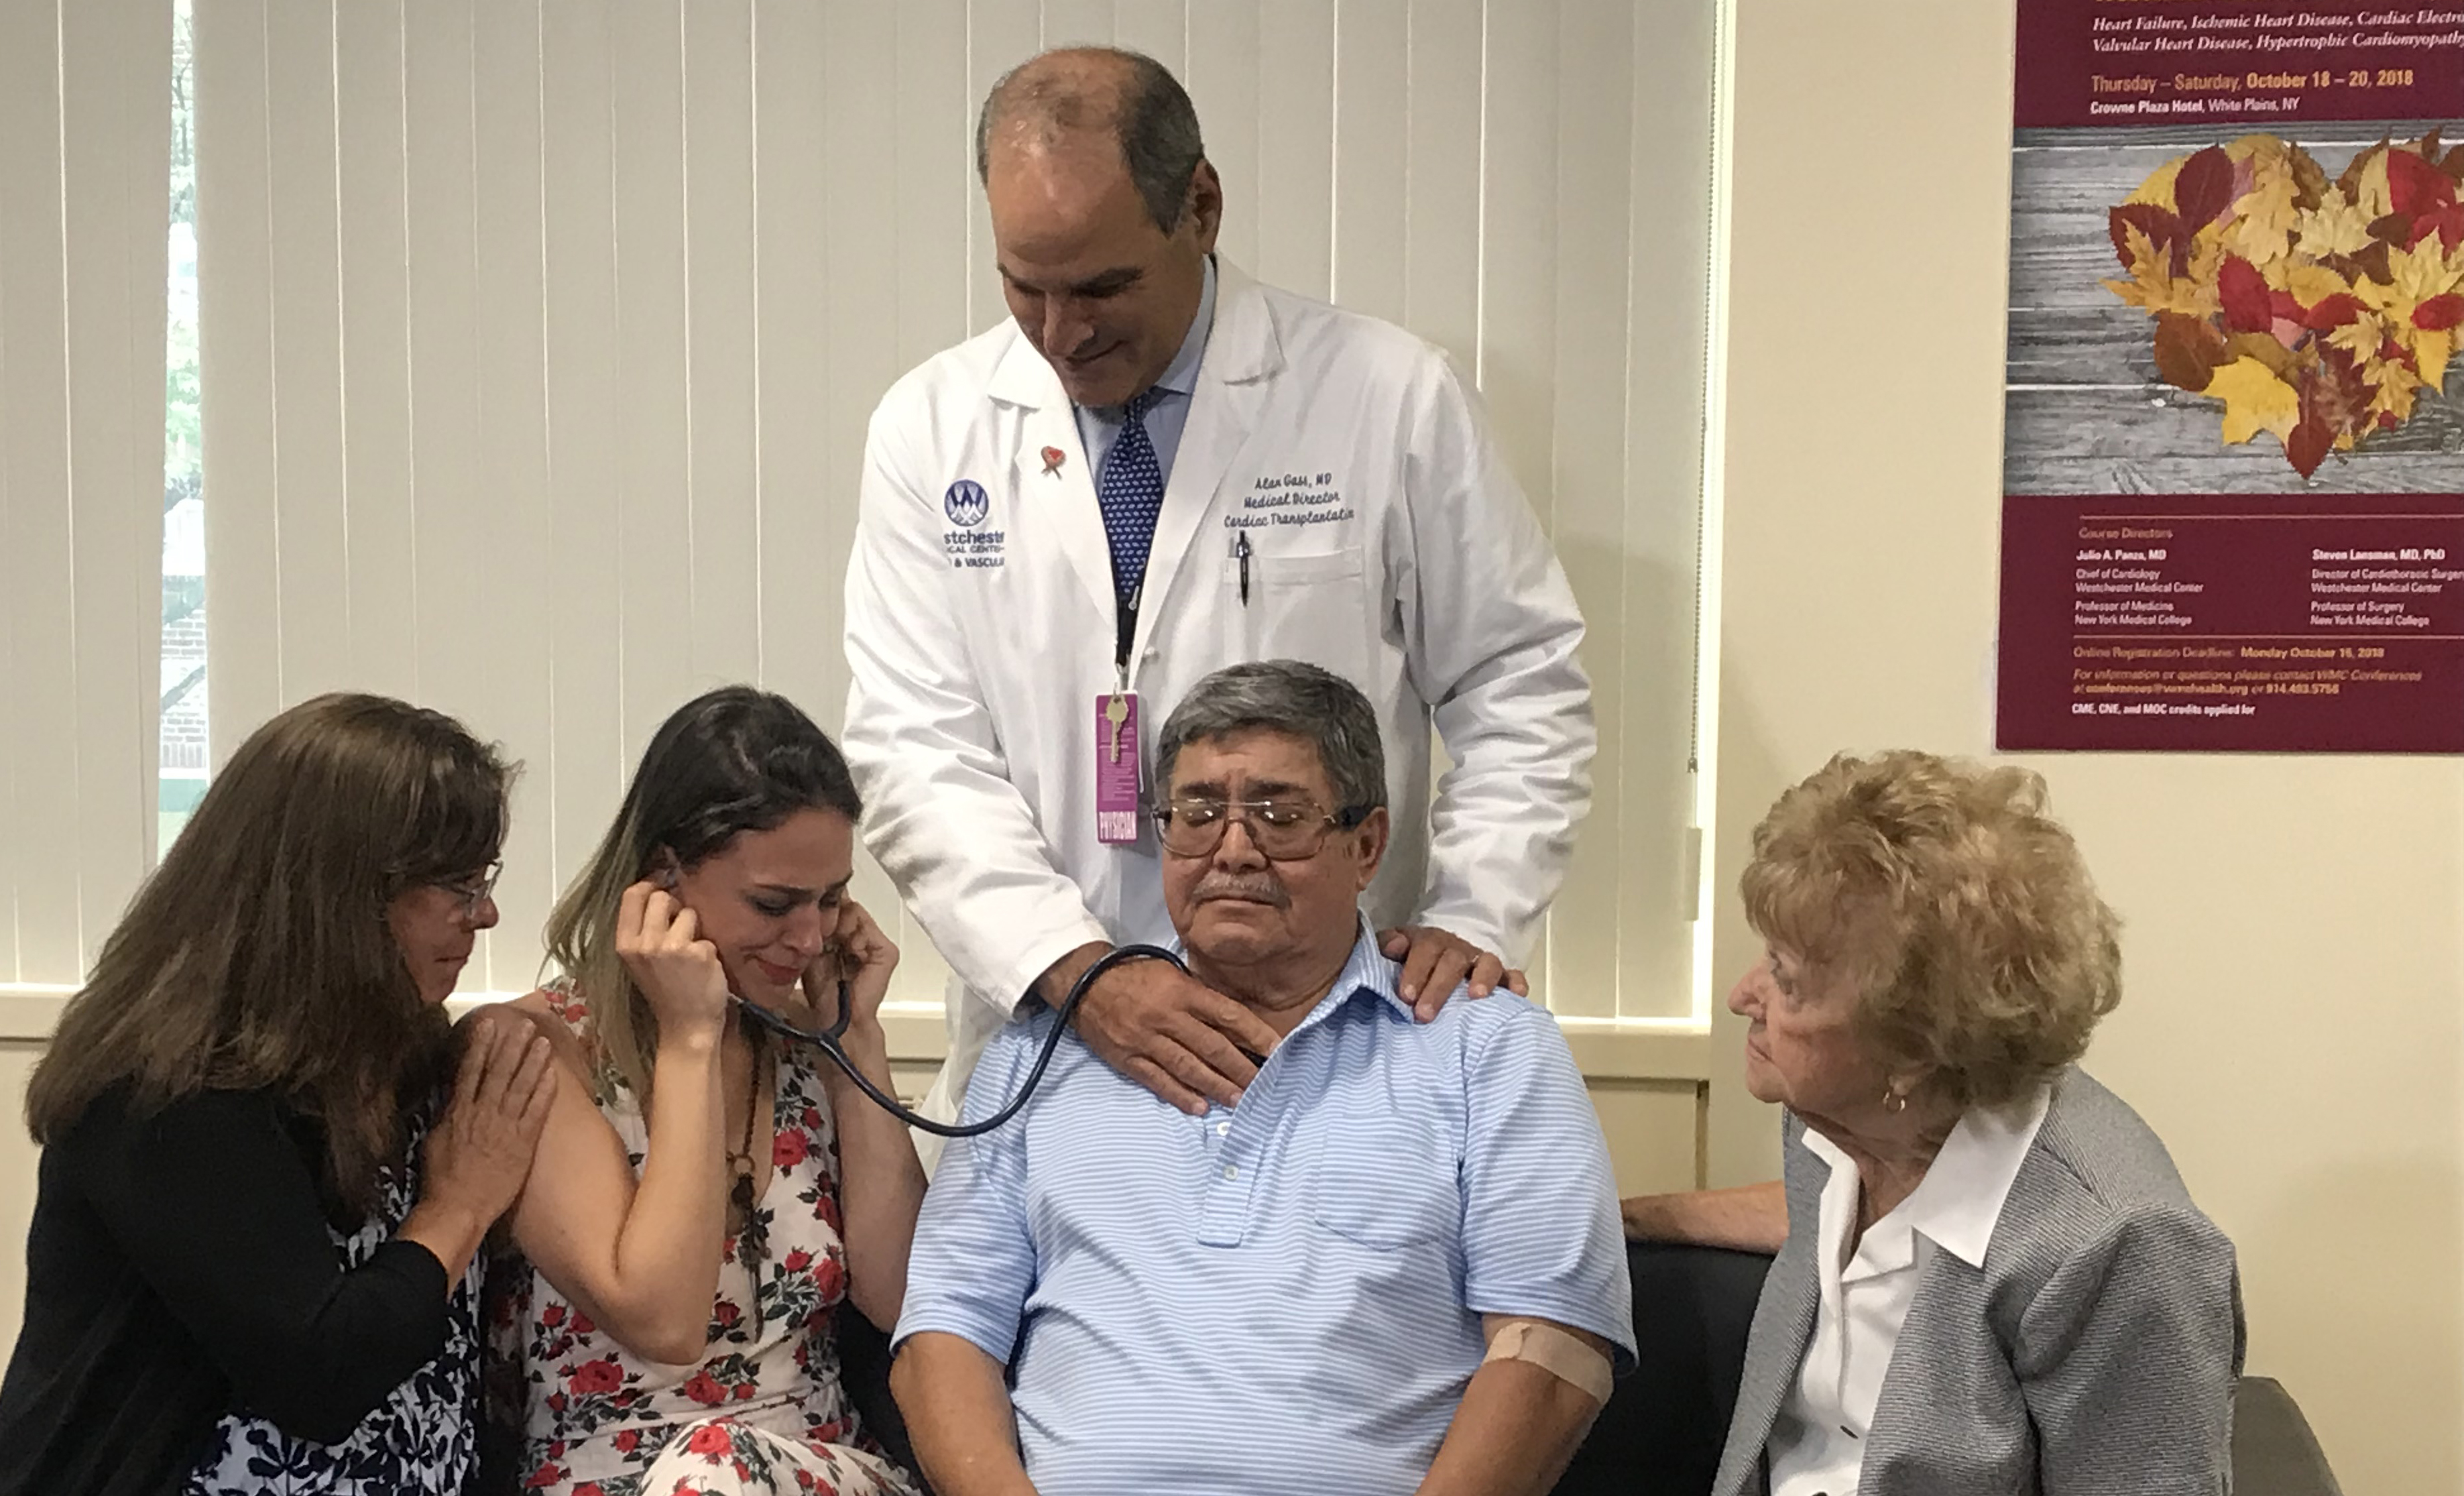 Family Hears Loved One's Heart Beat Again